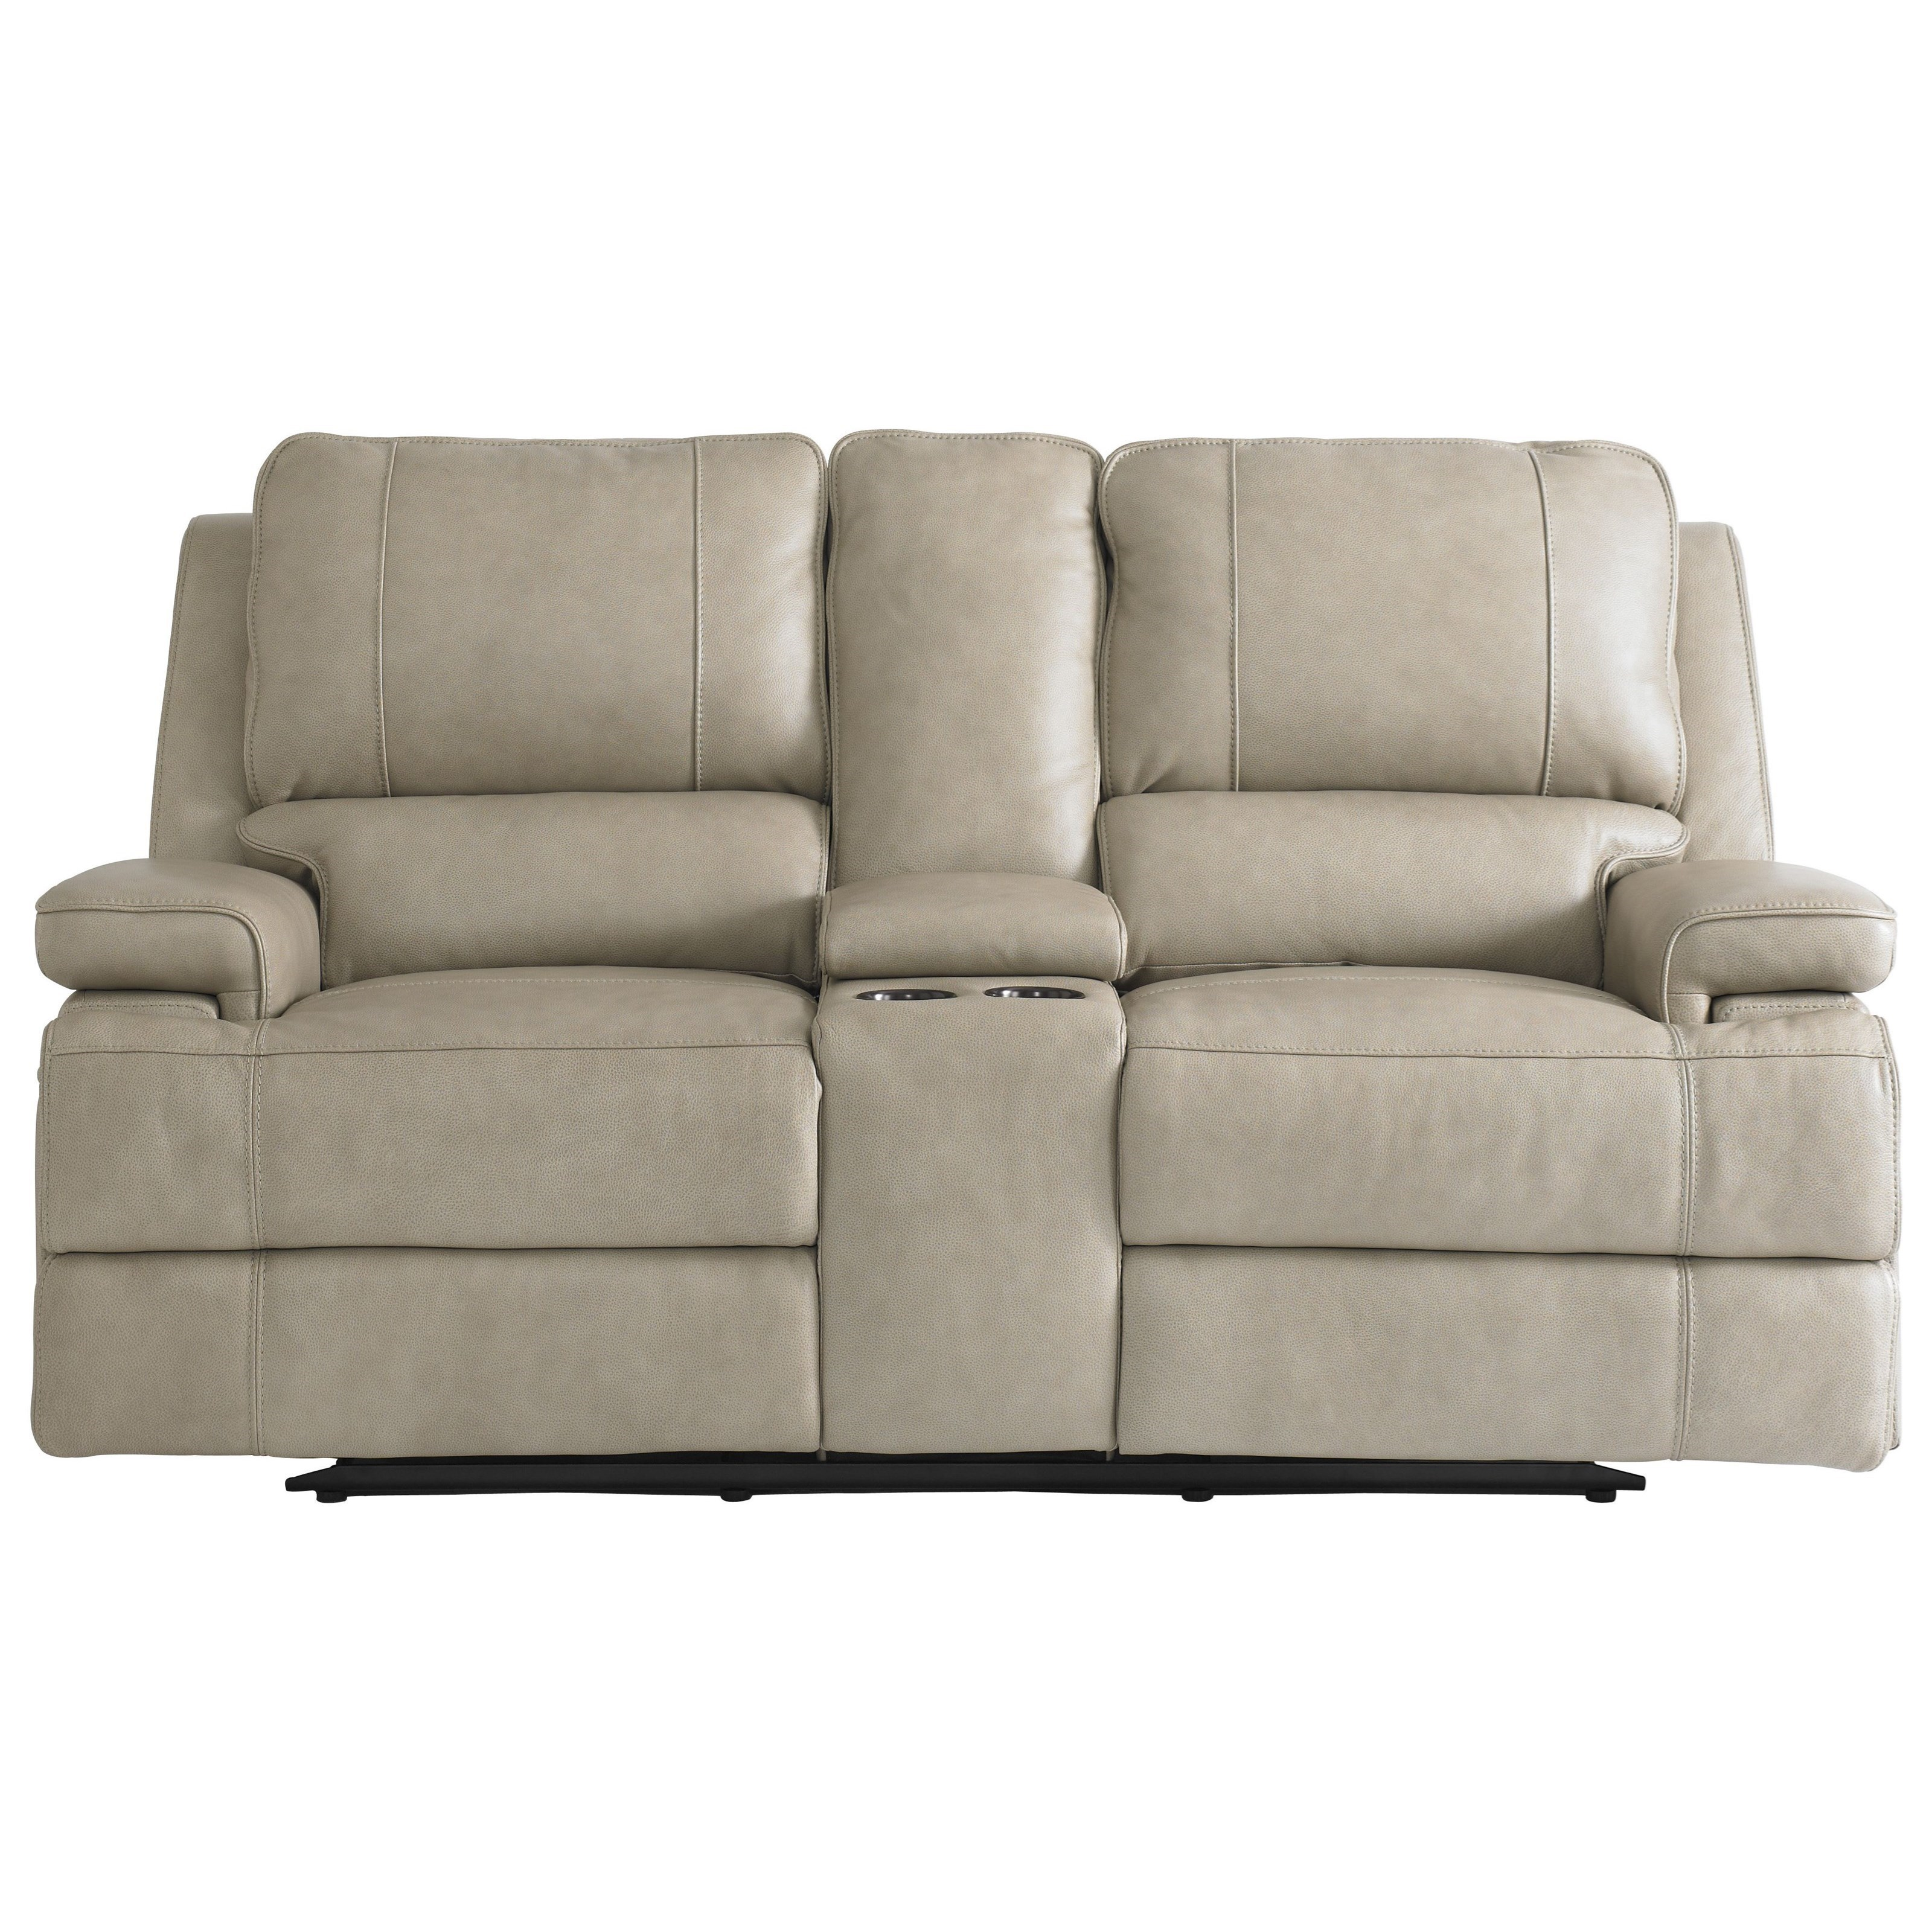 Parsons Club Level  Double Reclining Loveseat w/ Power Headrests by Bassett at Darvin Furniture